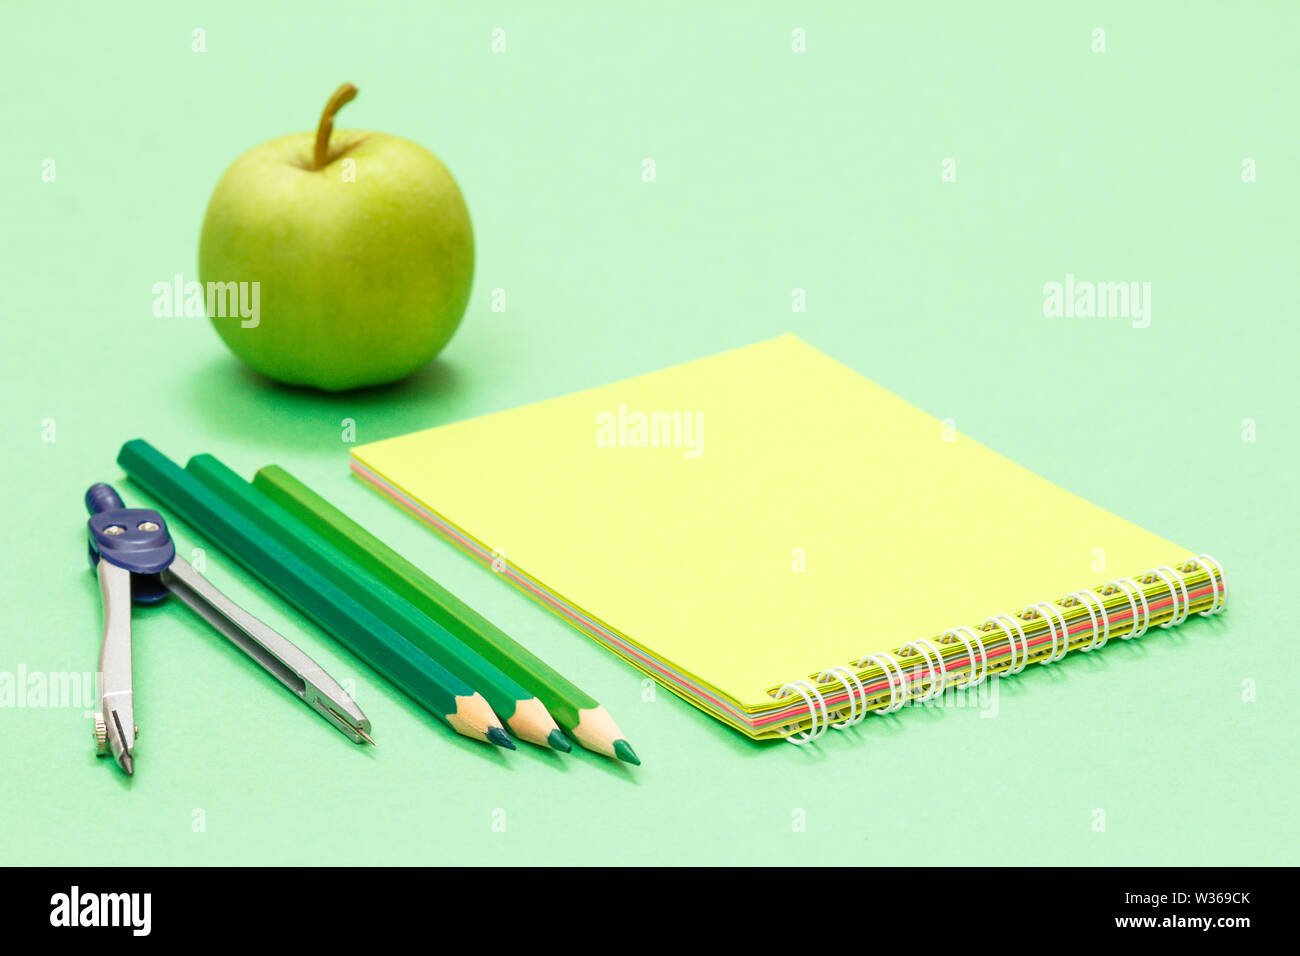 Compass, color pencils, notebook and apple on the green background. Back to school concept. School supplies. Shallow depth of field. - Stock Image